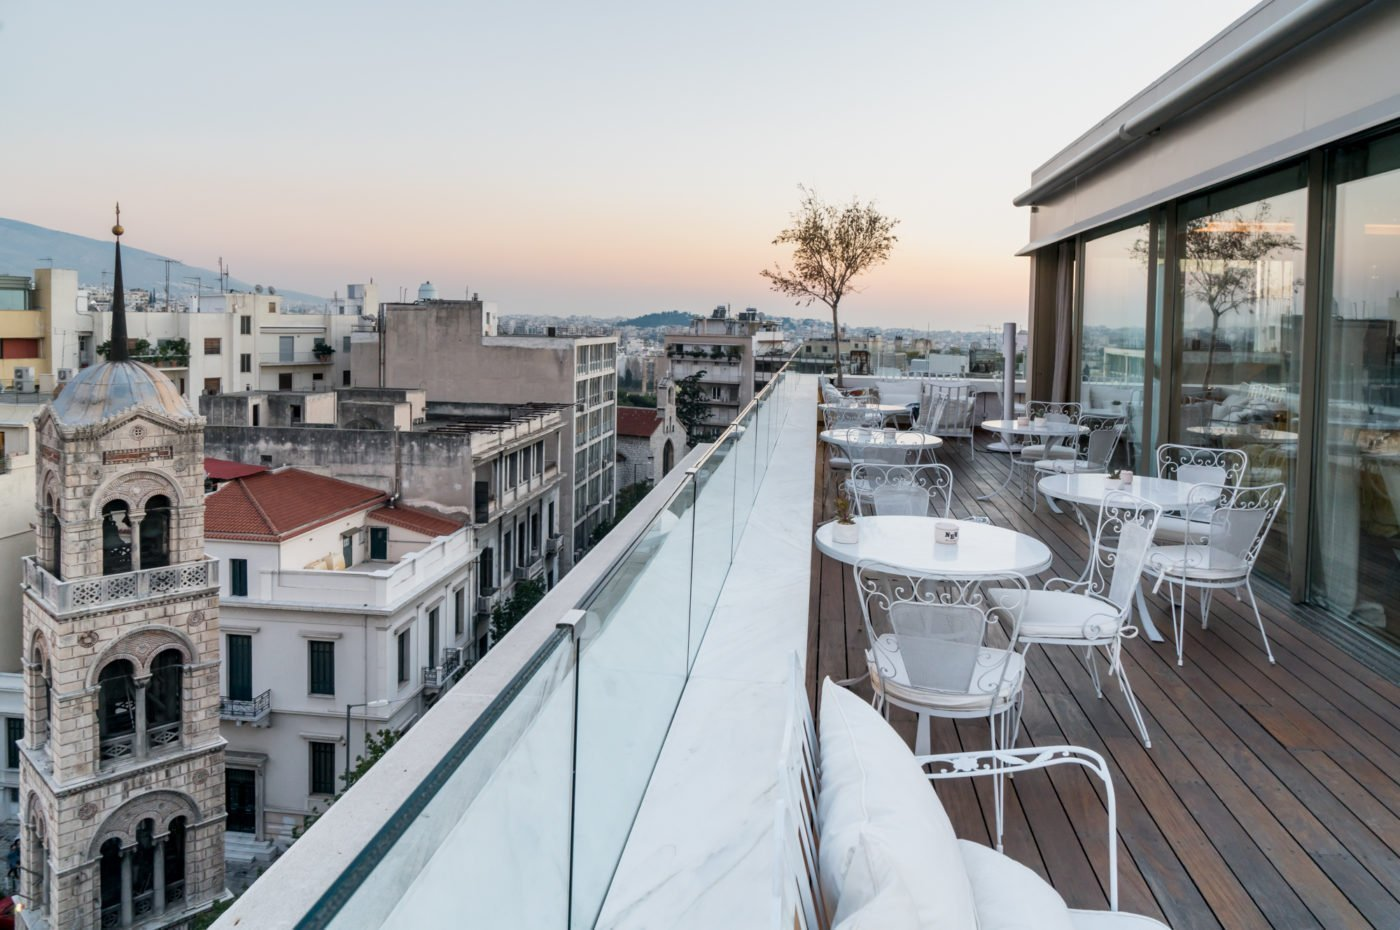 Art Lounge, the rooftop bar of New Hotel in Athens